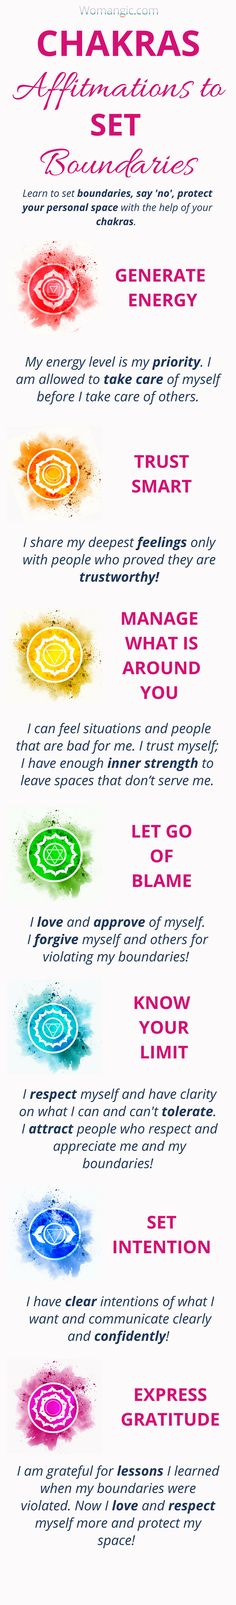 Learn how to set healthy boundaries with your Chakras, Chakra Balancing, Root, Sacral, Solar Plexus, Heart, Throat, Third Eye, Crown, Chakra meaning, Chakra affirmation, Chakra Mantra, Chakra Energy, Energy, Chakra articles, Chakra Healing, Chakra Cleanse, Chakra Illustration, Chakra Base, Chakra Images, Chakra Signification, Anxiety, Anxiety Relief, Anxiety Help, Anxiety Social, Anxiety Overcoming, Anxiety Attack.